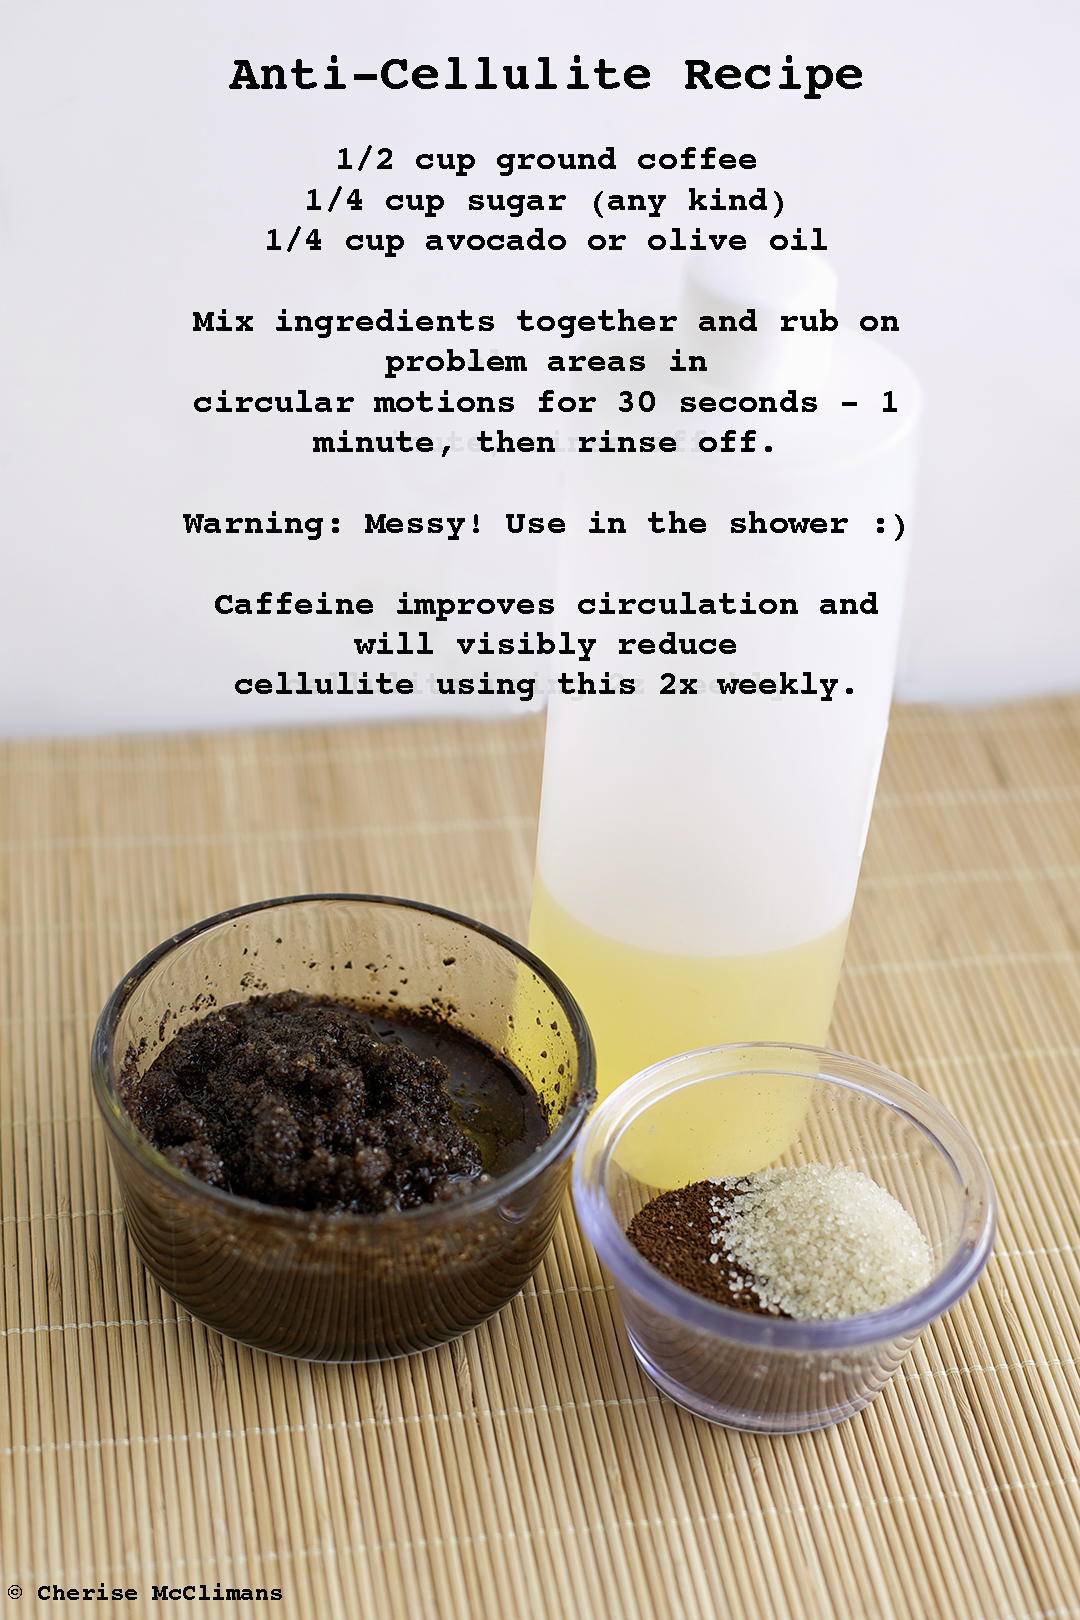 cellulite treatment with coffee grounds